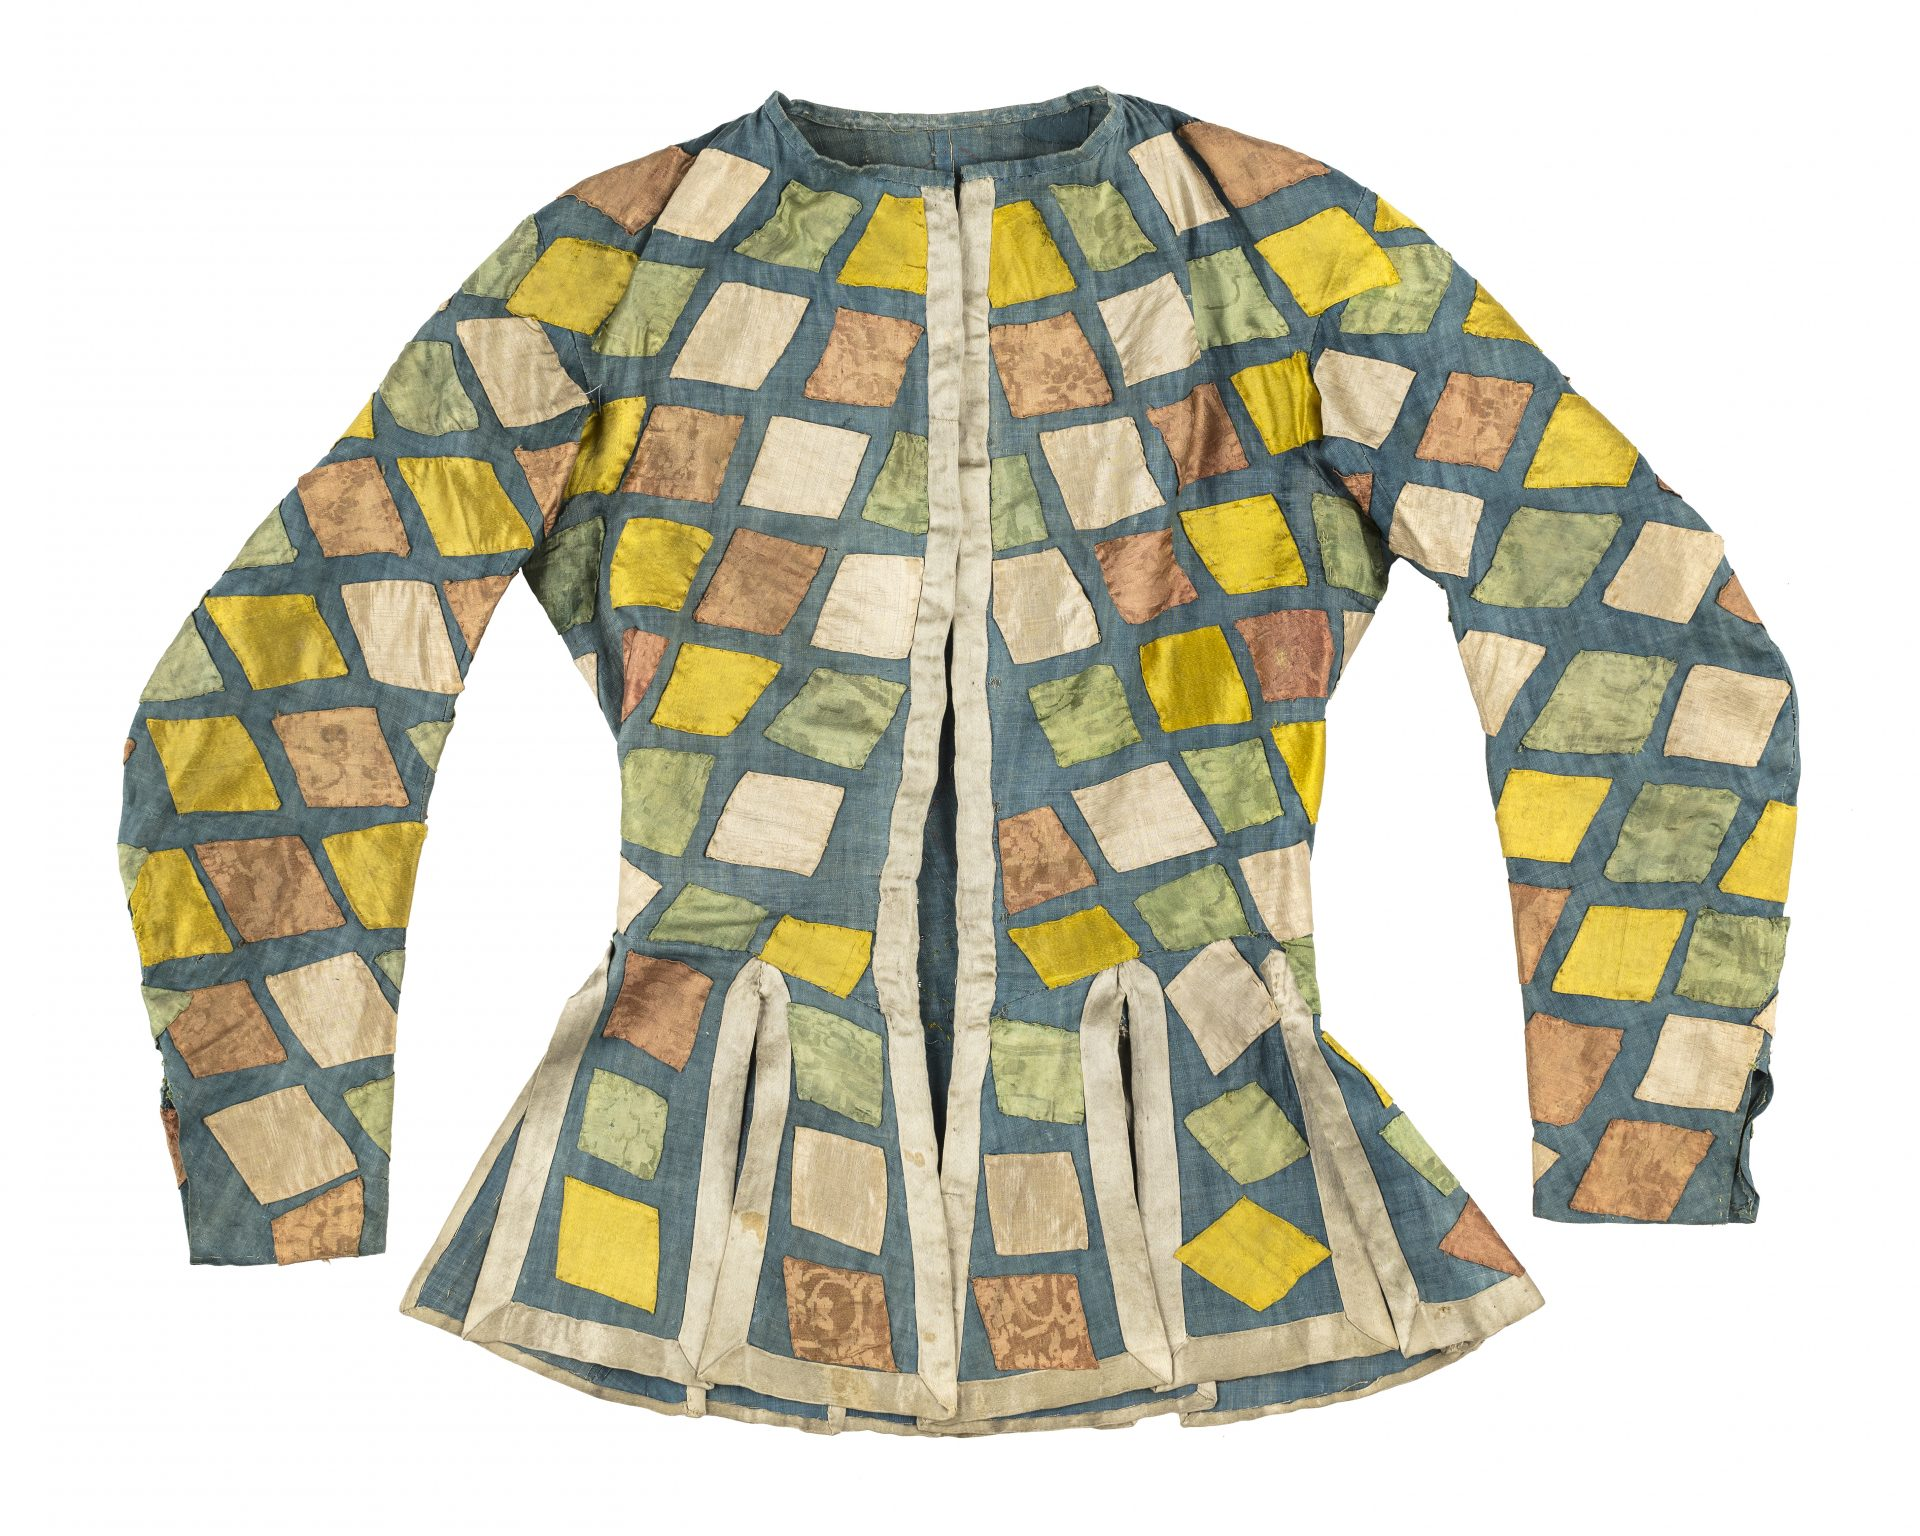 Jacket with checkered pattern in yellow and green.